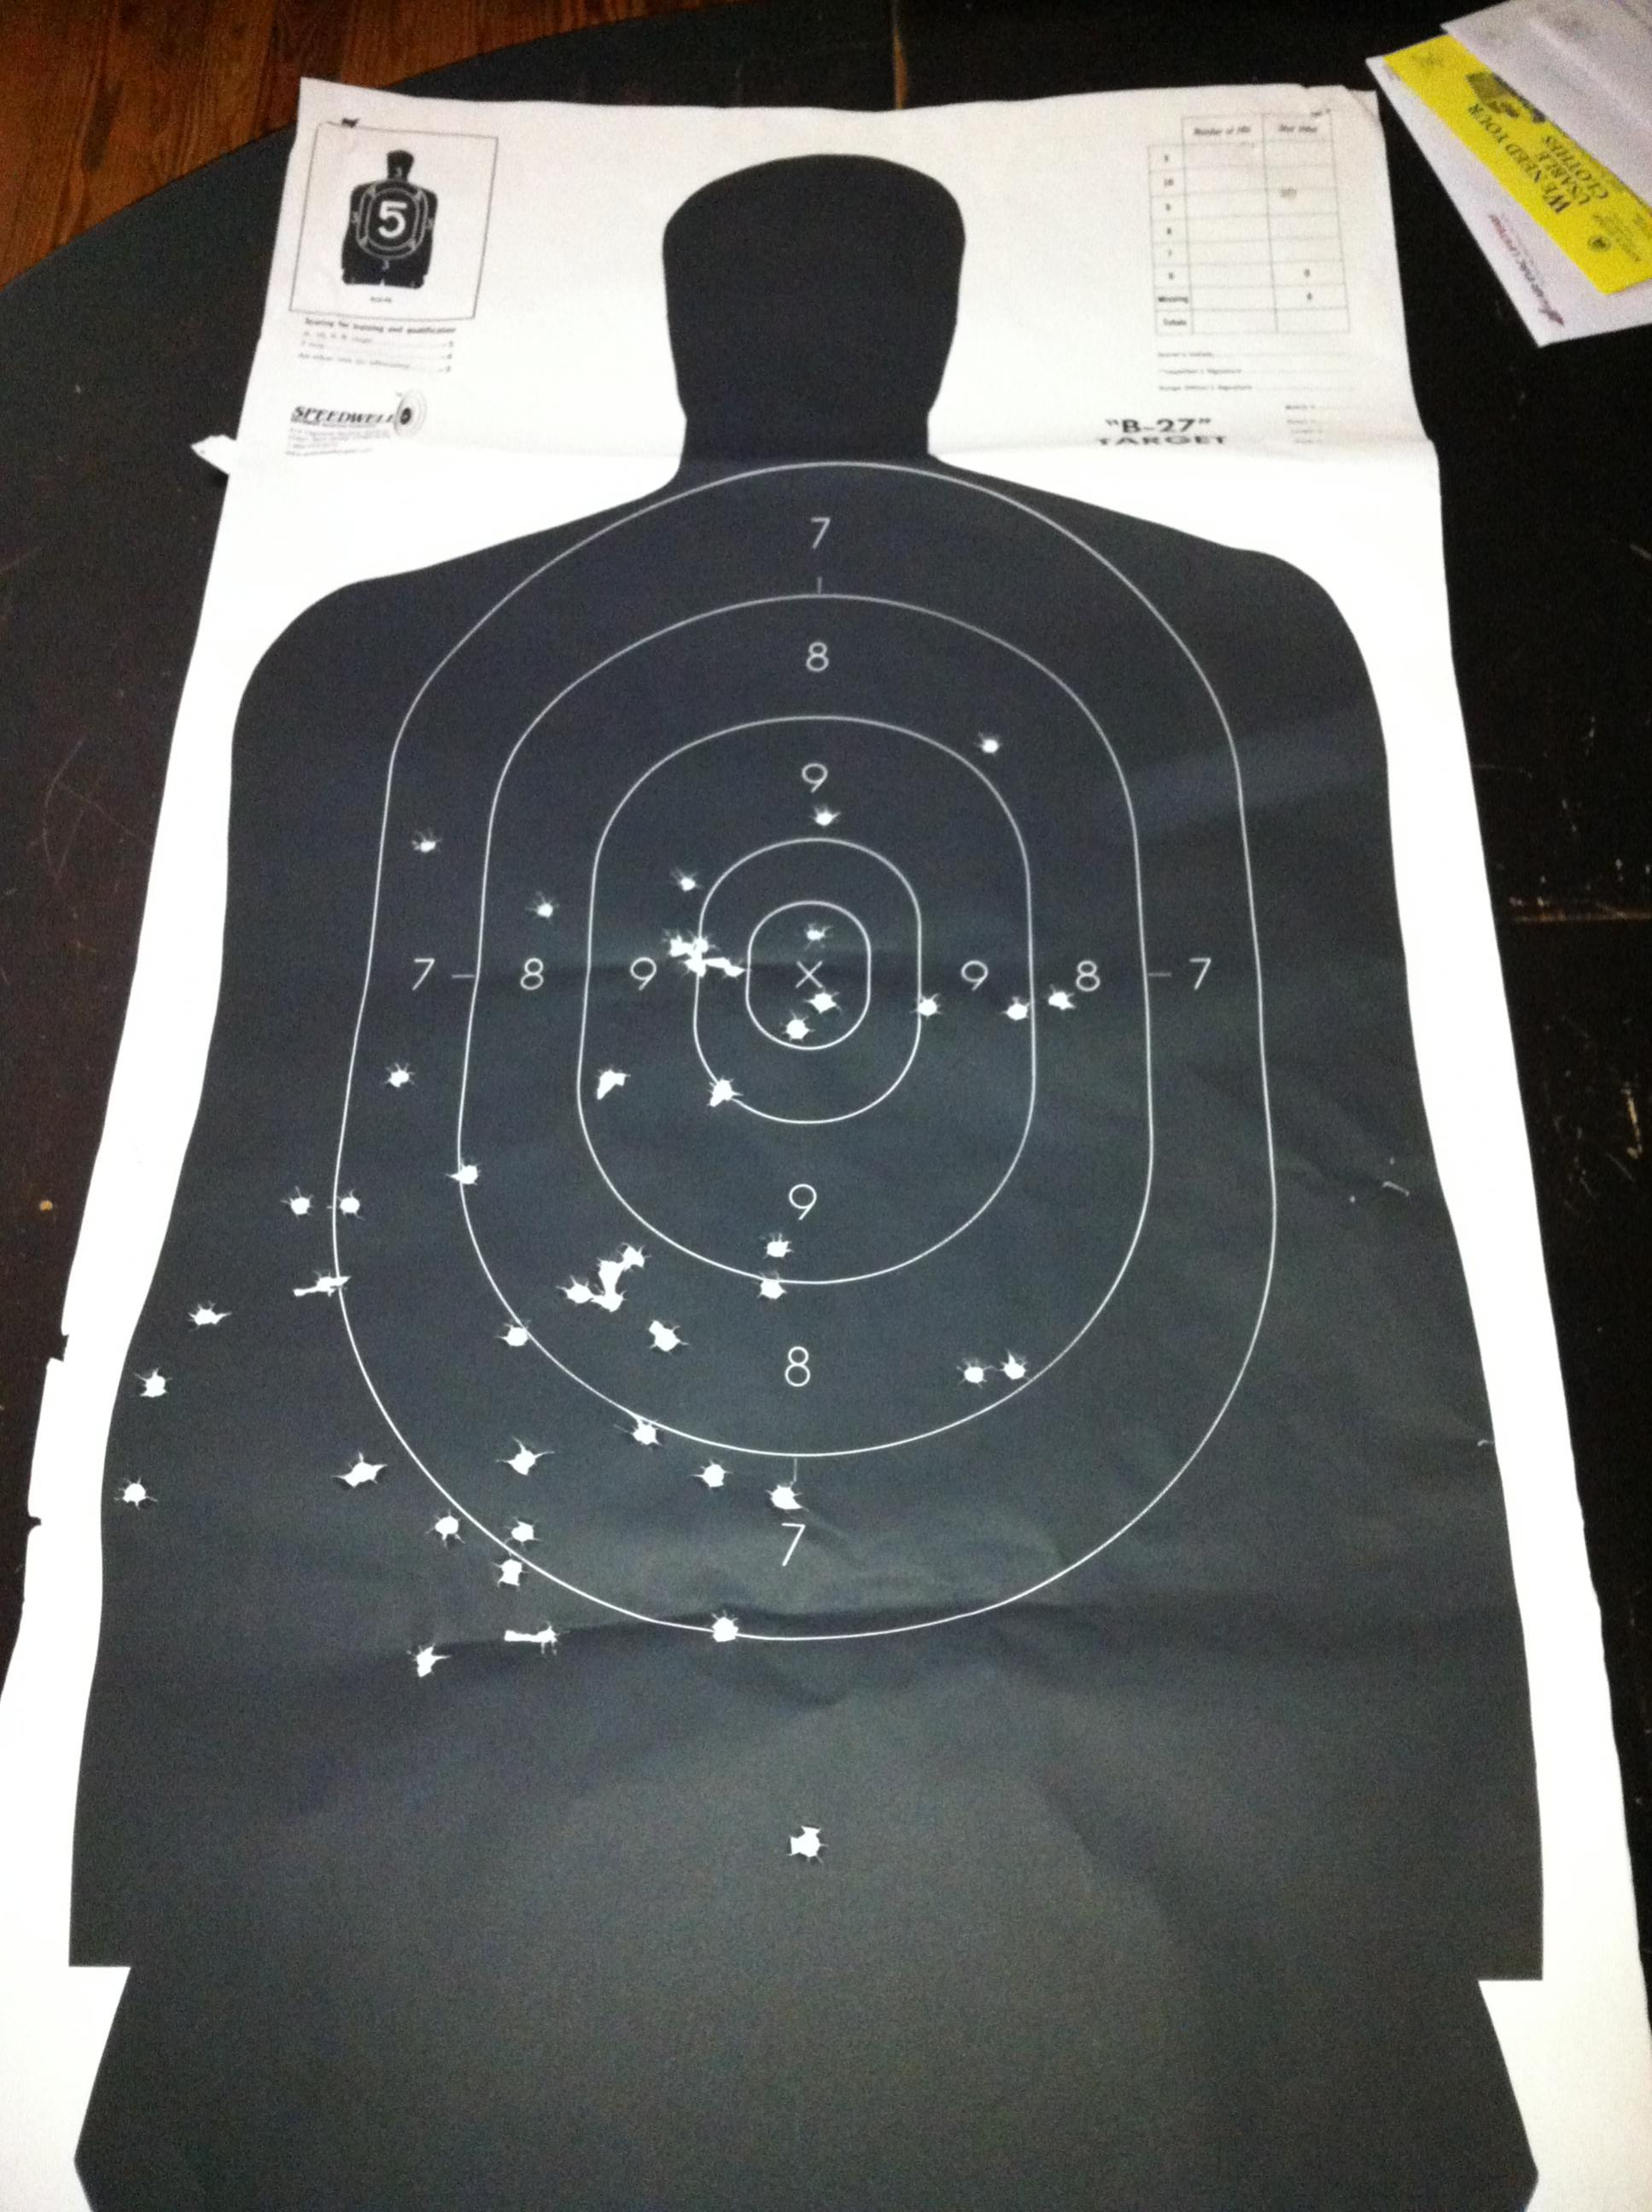 Part 2 of Citizens' Firearms Class - at the Range-range-all.jpg